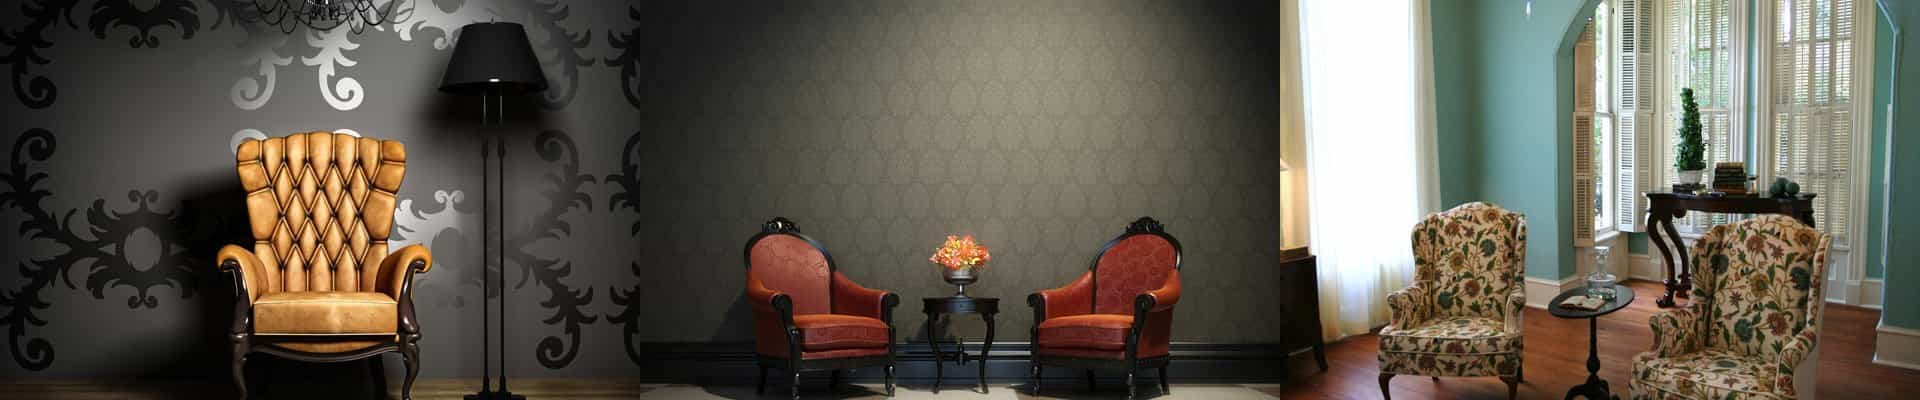 red patterned fabric upholstery